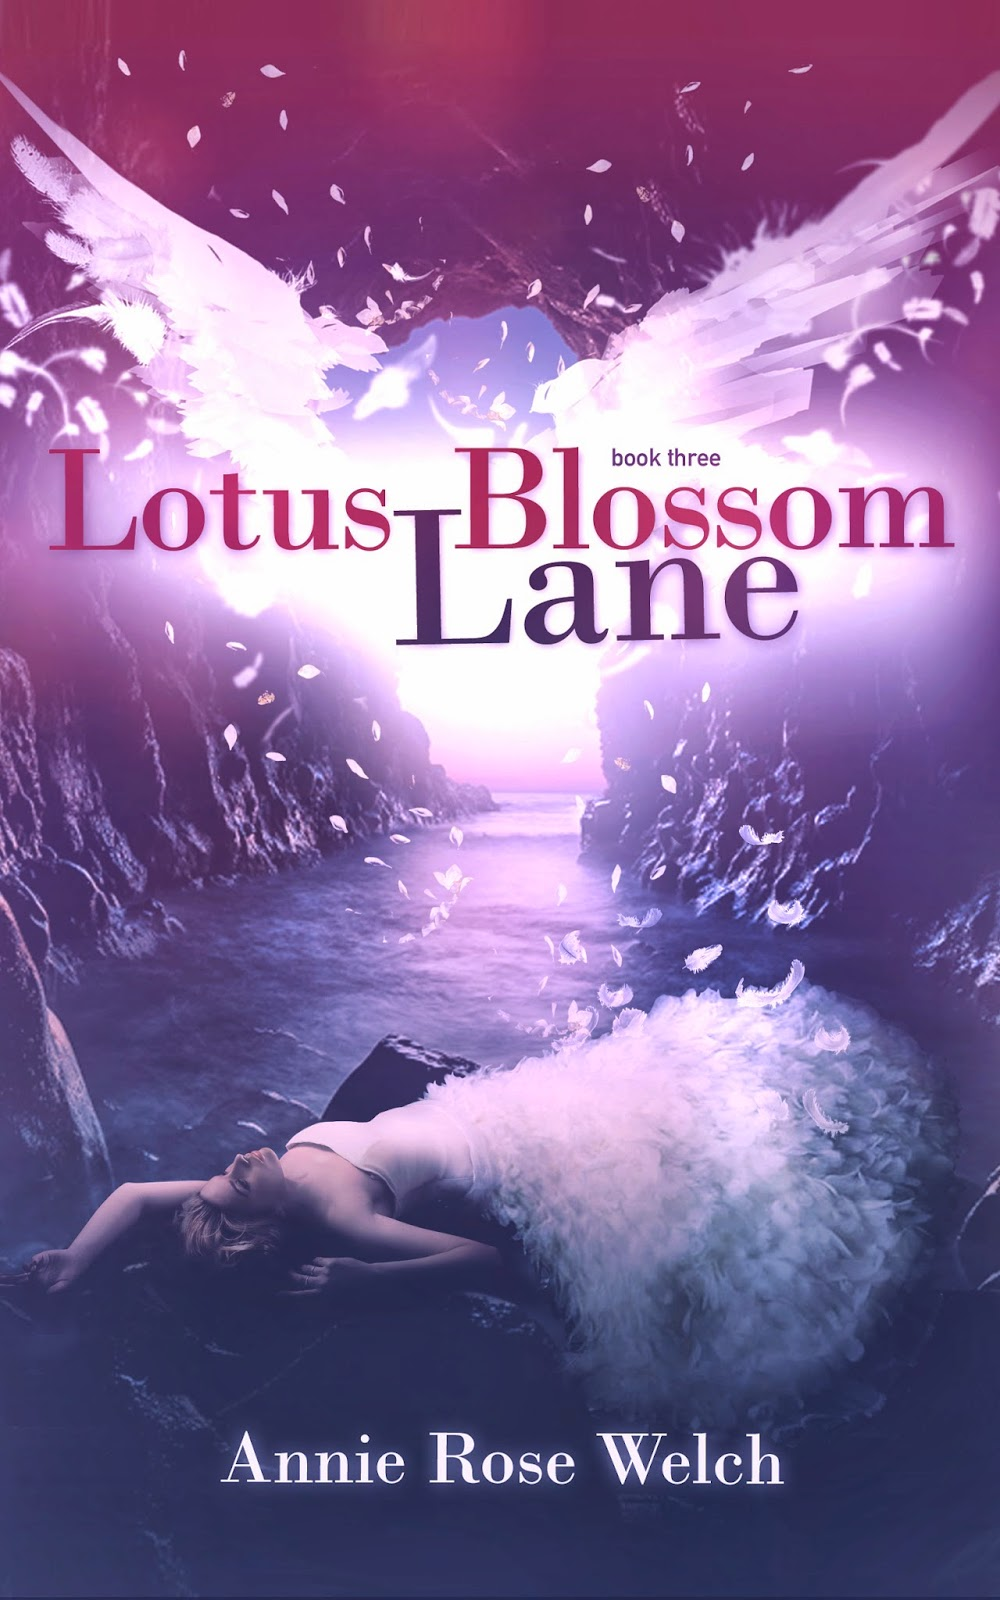 Cover Reveal: Lotus Blossom Lane By Annie Rose Welch